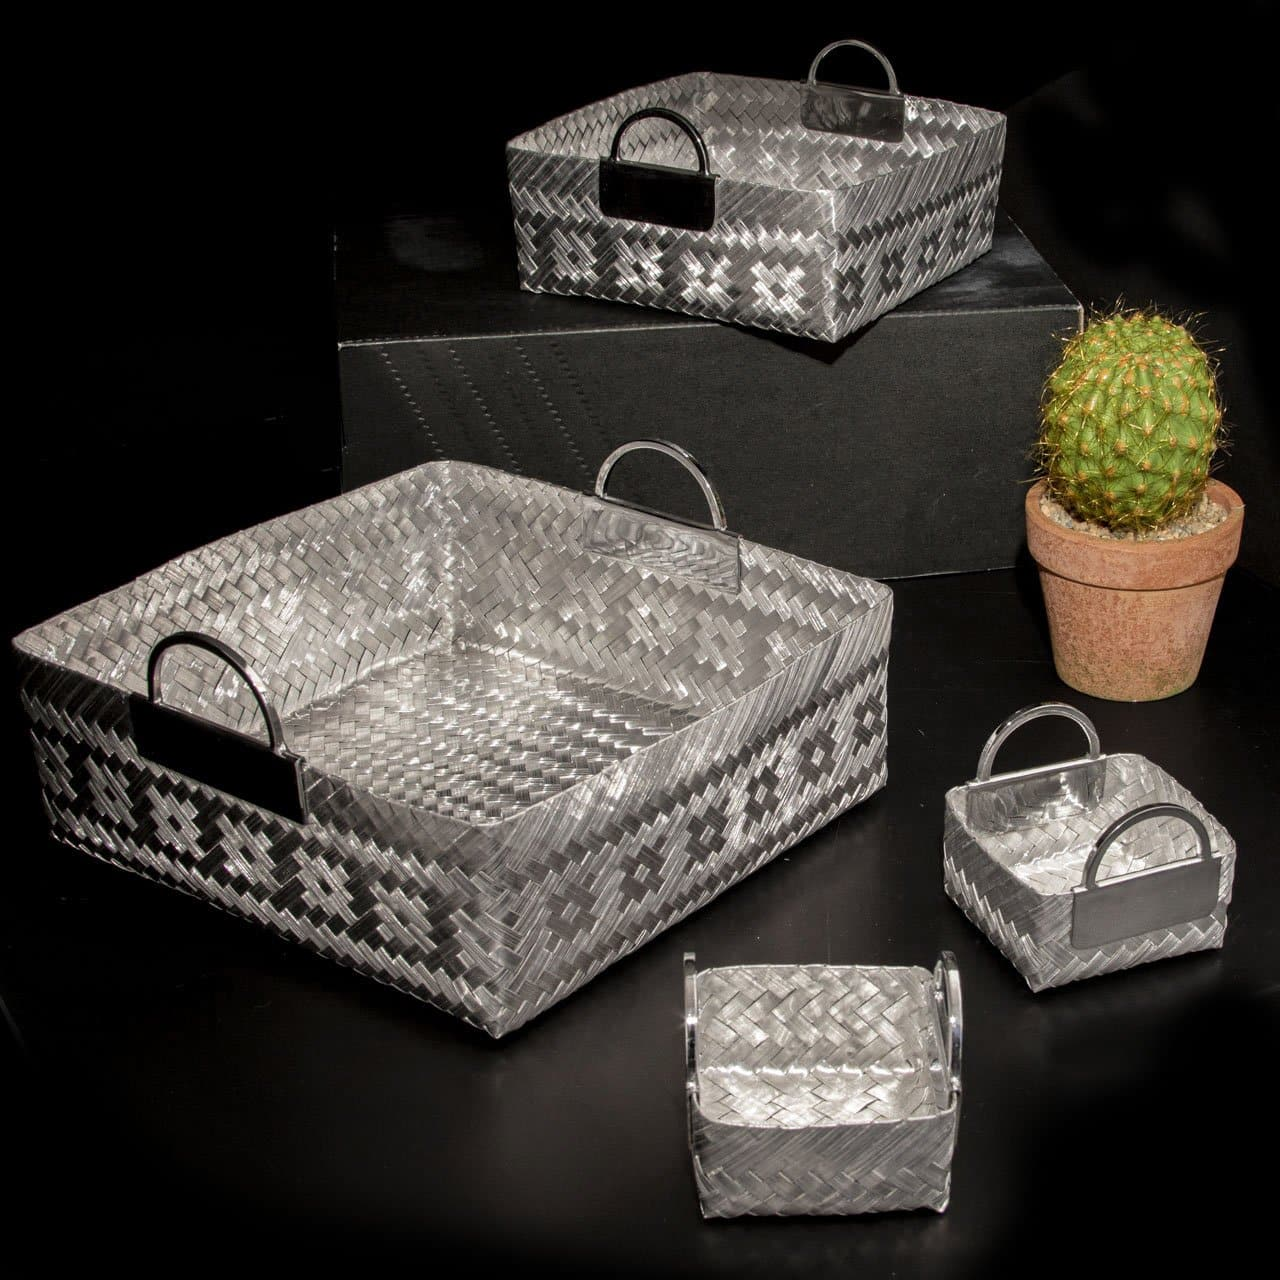 Woven Aluminum Square Basket with Handles